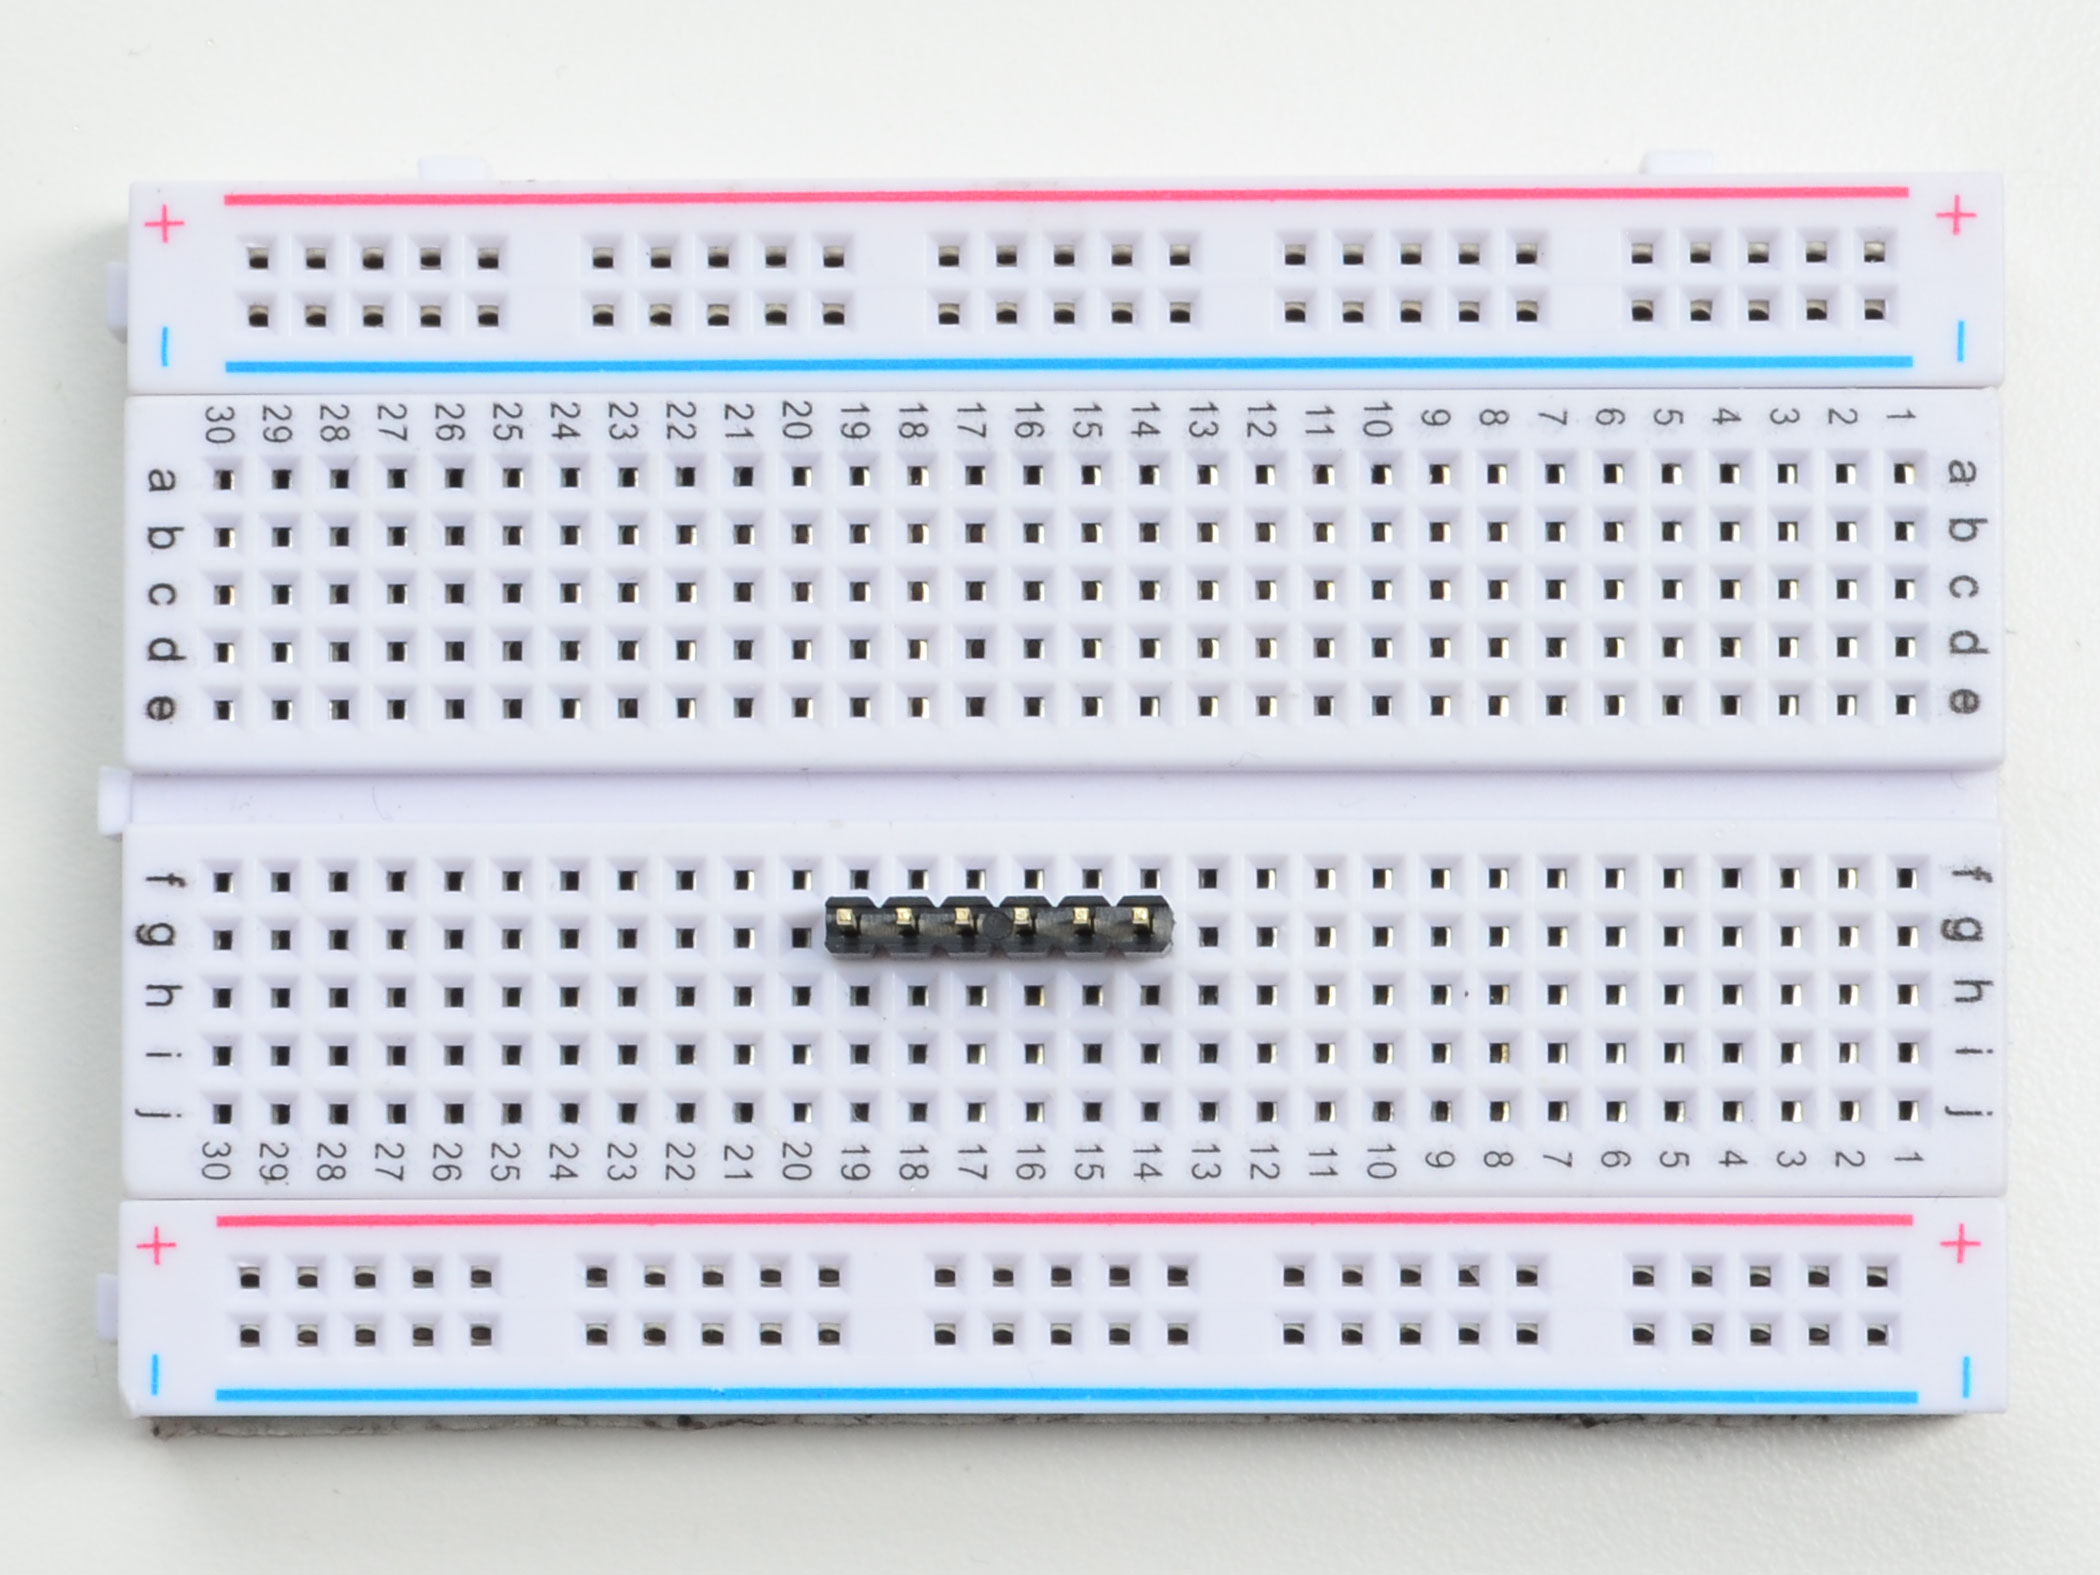 adafruit_products_header2.jpg